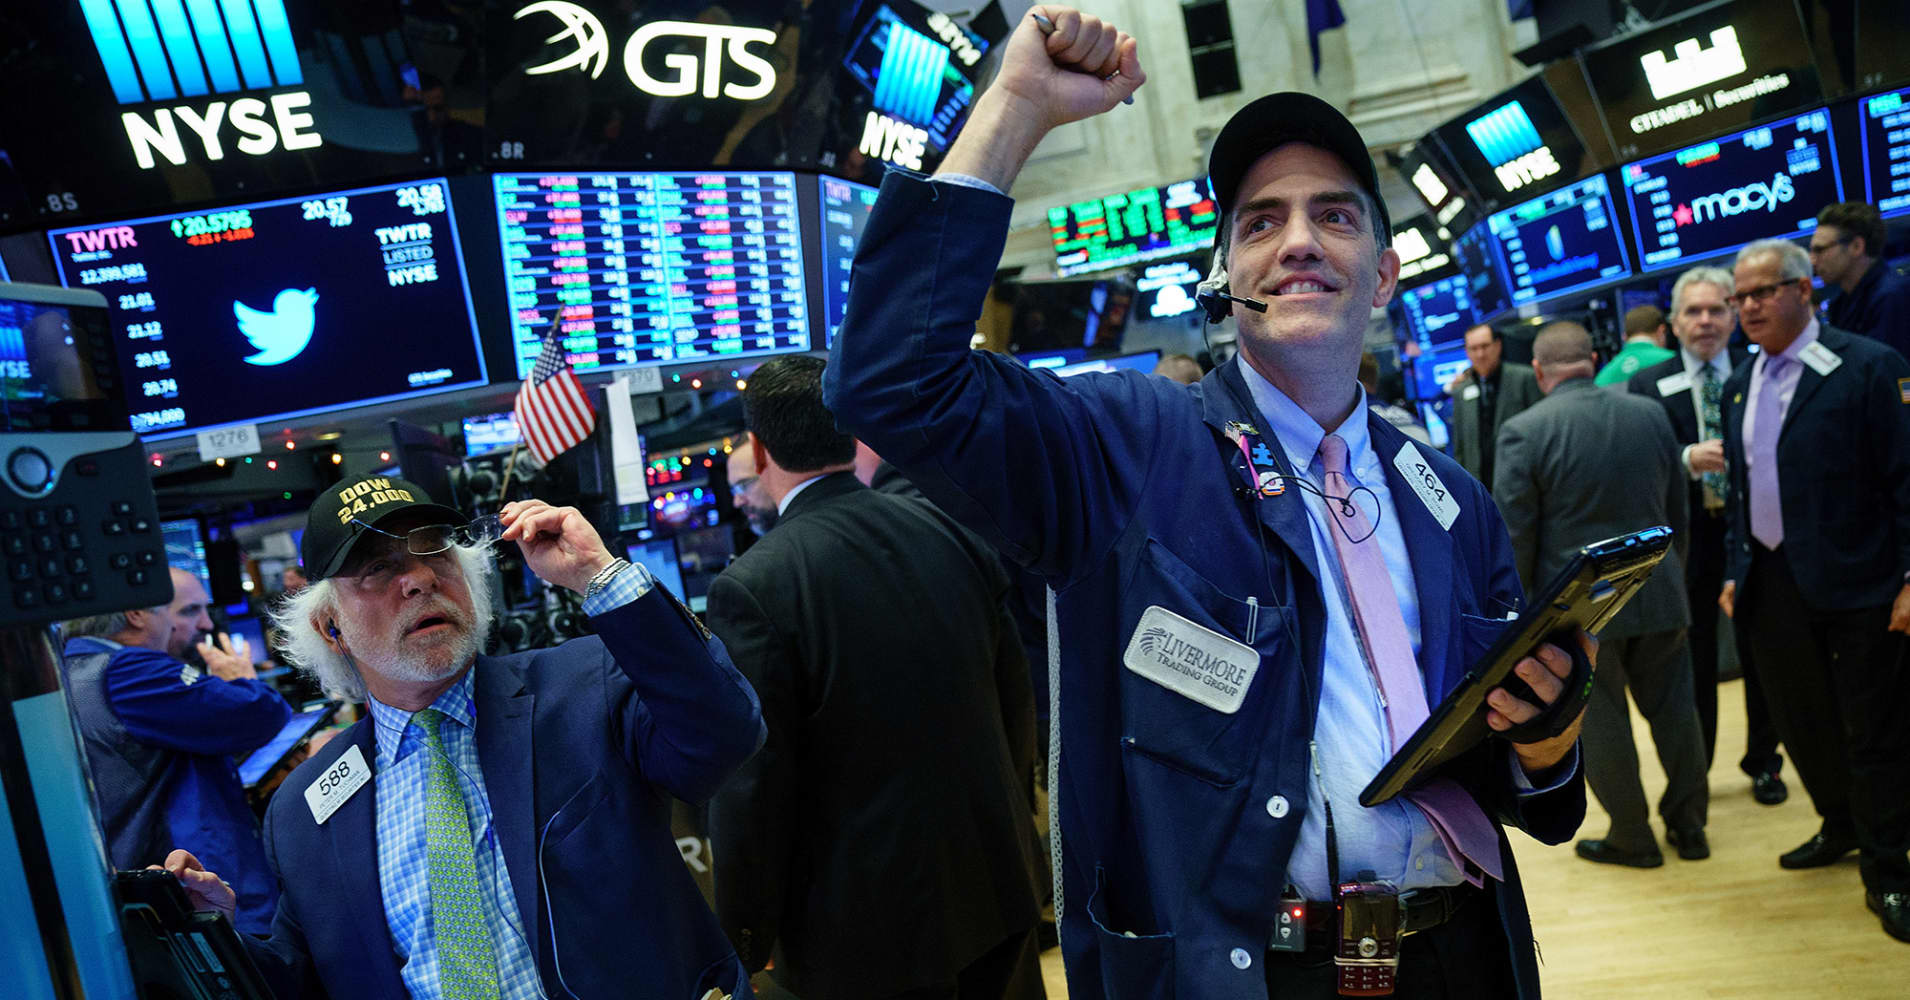 Traders work on the floor of the New York Stock Exchange (NYSE) at the closing bell, November 30, 2017 in New York City. On Thursday afternoon, the Dow closed at over 24,000 points for the first time in its history.